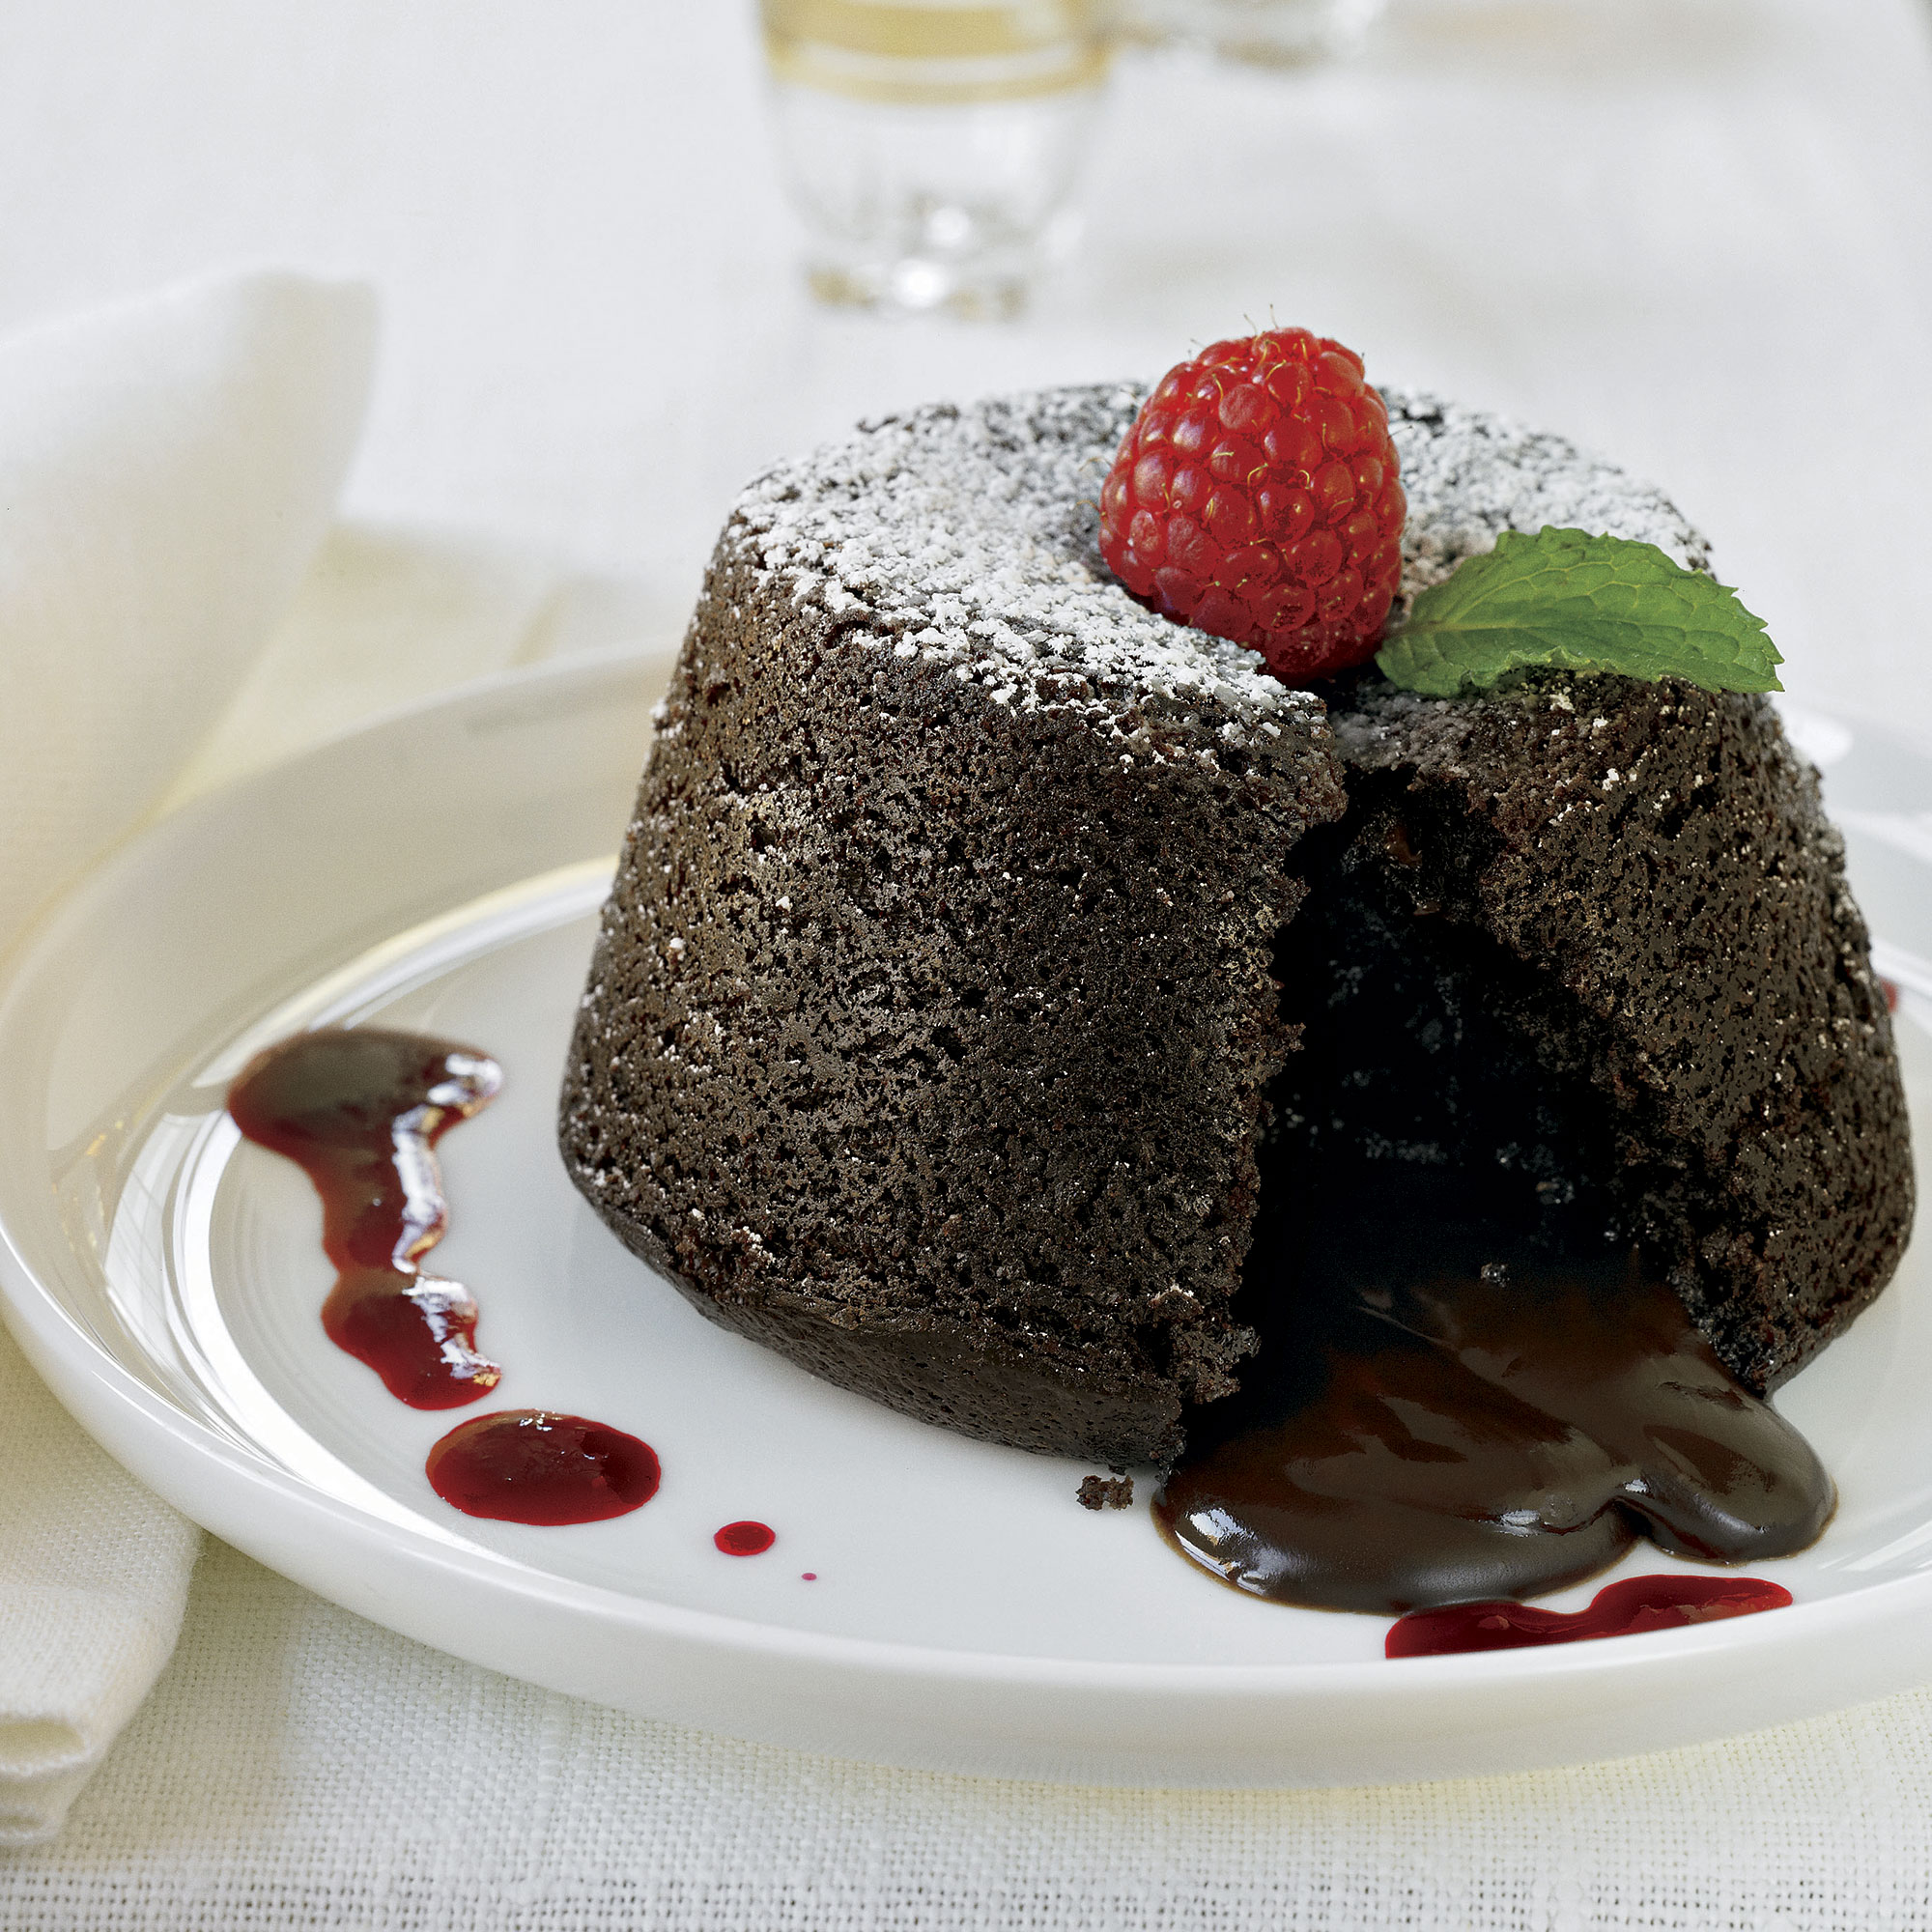 Permalink to Chocolate Molten Lava Cake